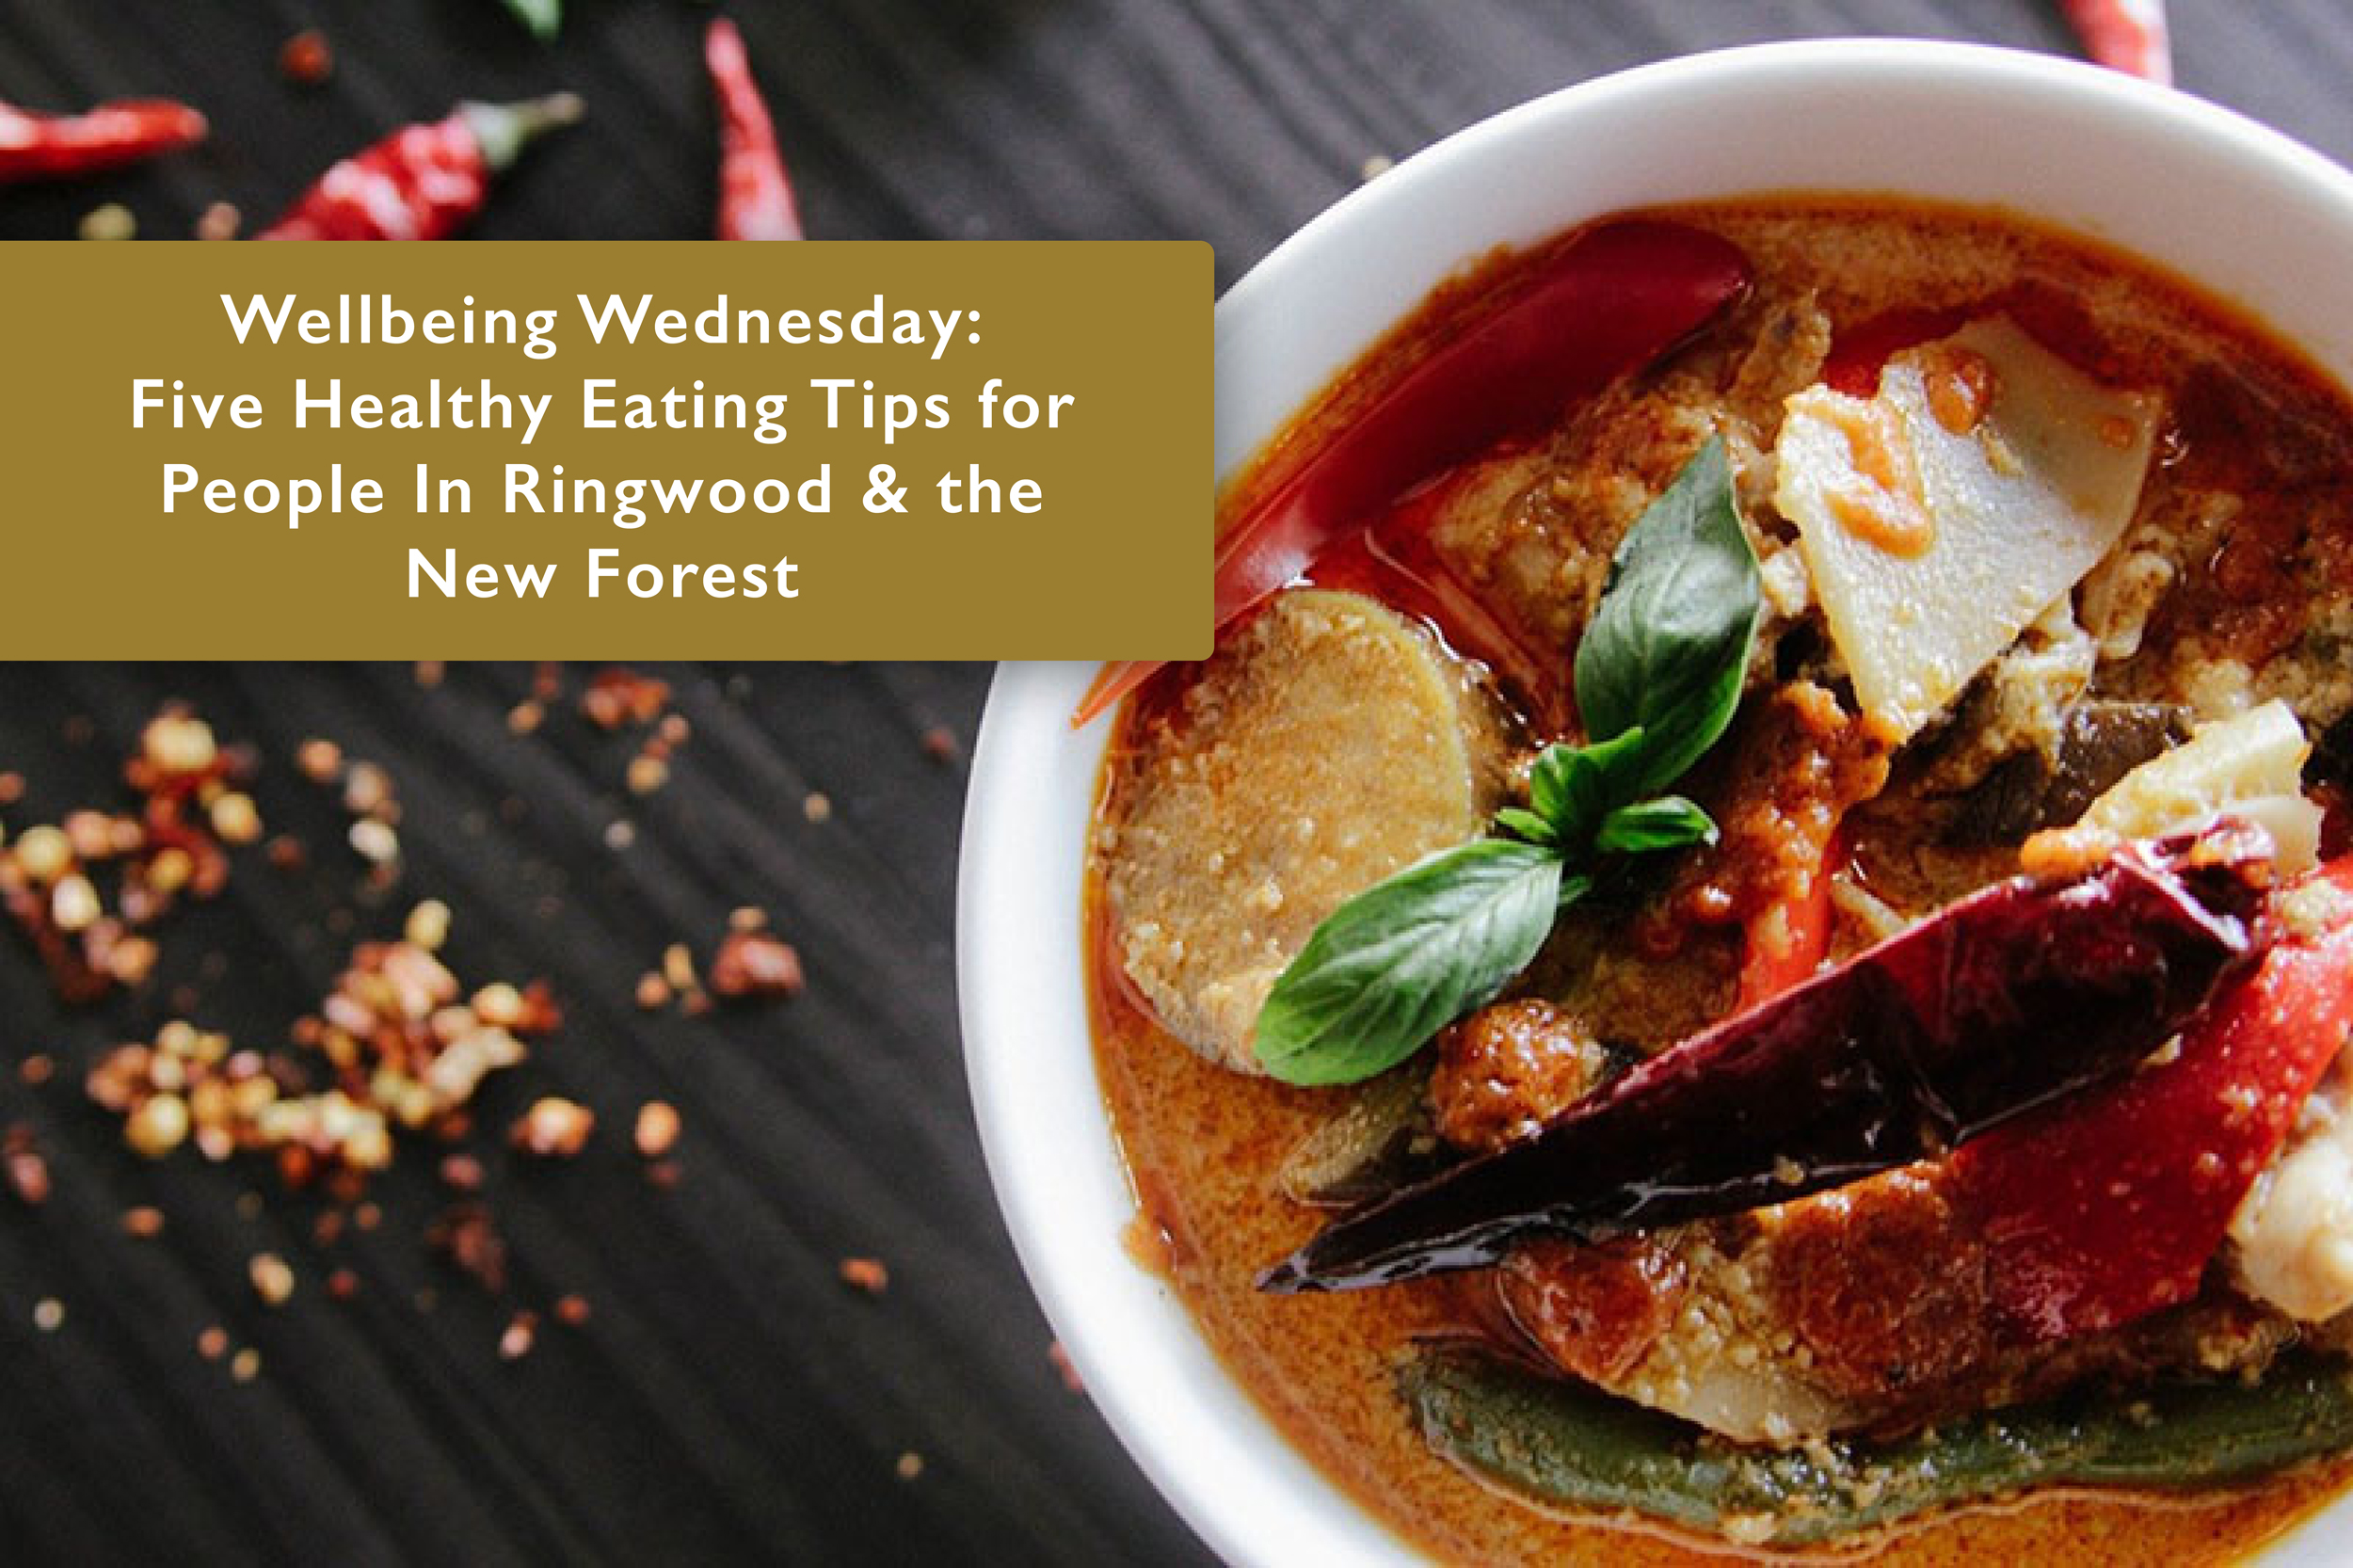 Wellbeing Wednesday: Five Healthy Eating Tips for People InRingwood & the New Forest